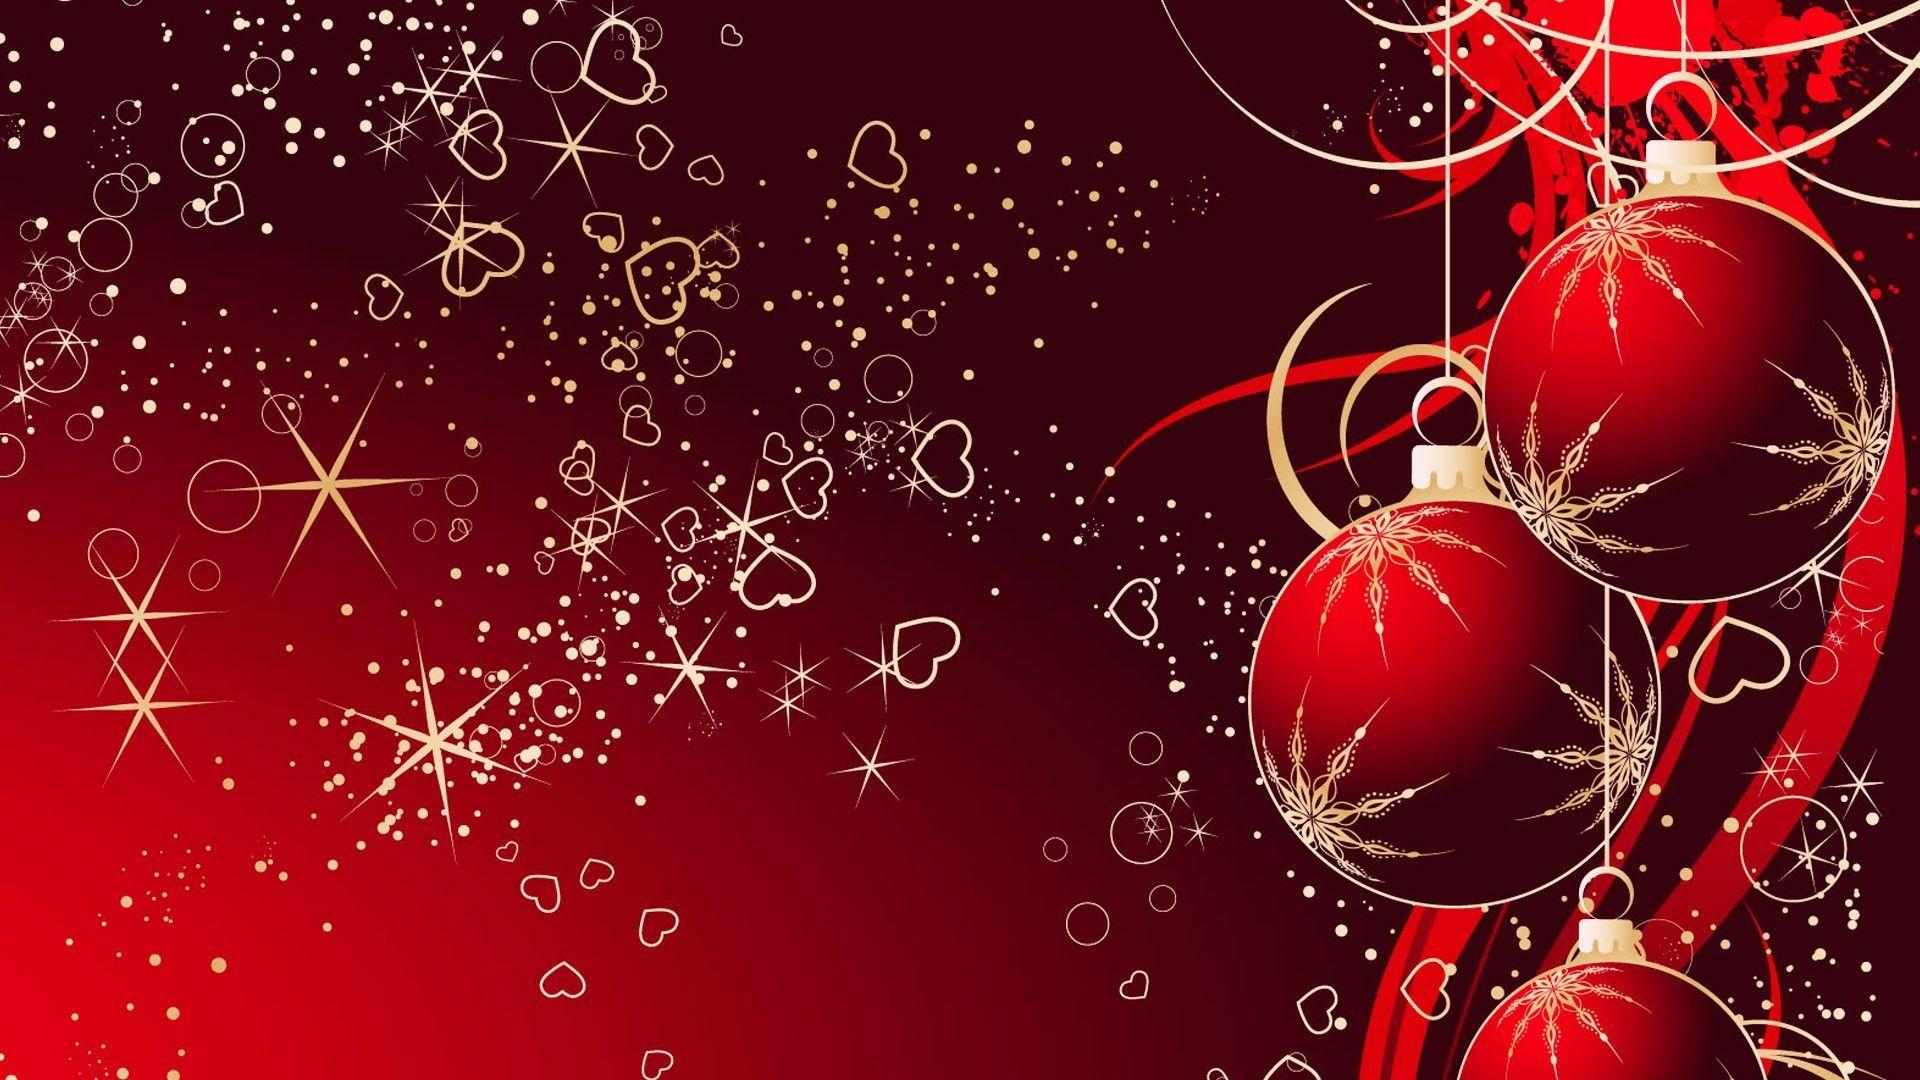 Red Christmas Wallpapers   Sky HD Wallpaper